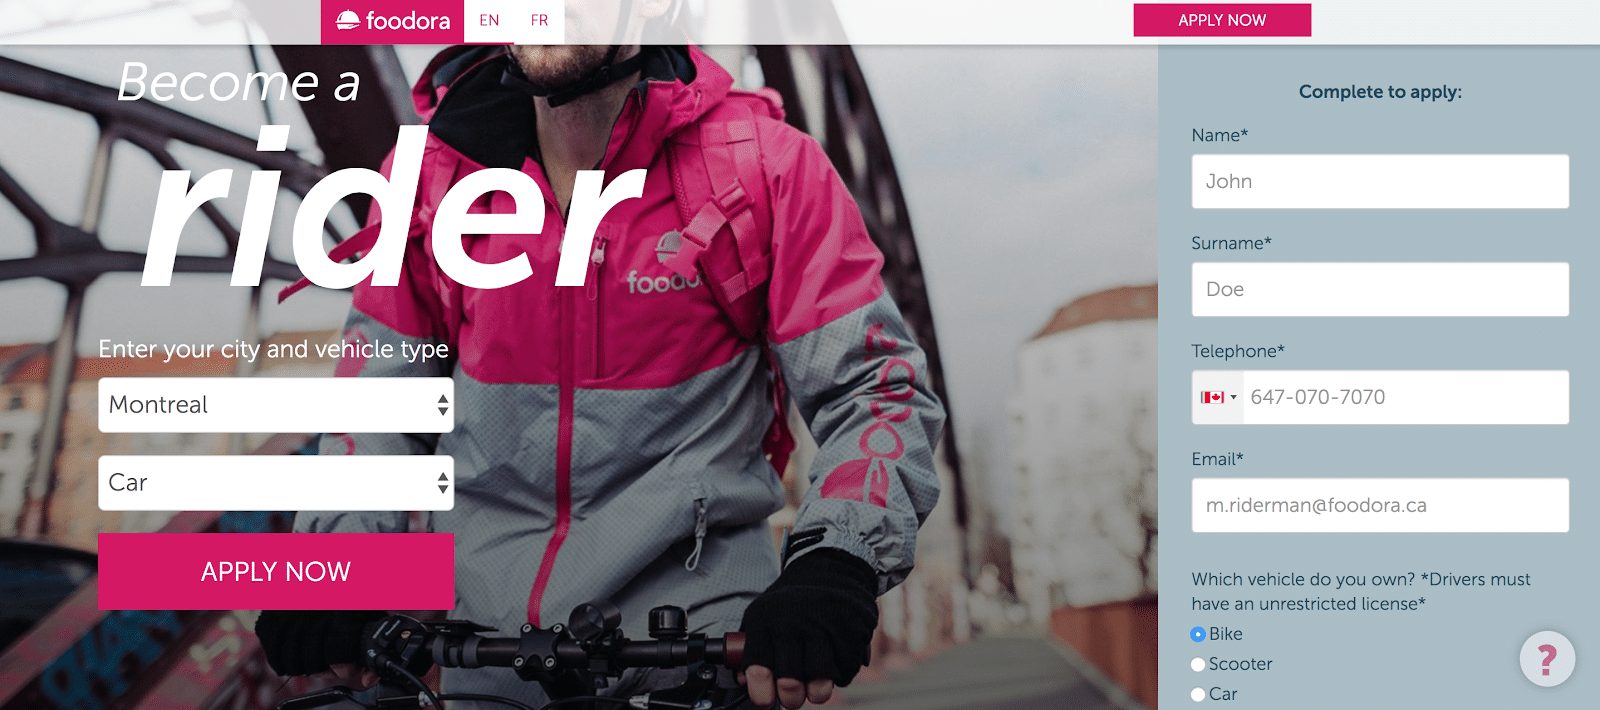 The Foodora easy application page to become a courier